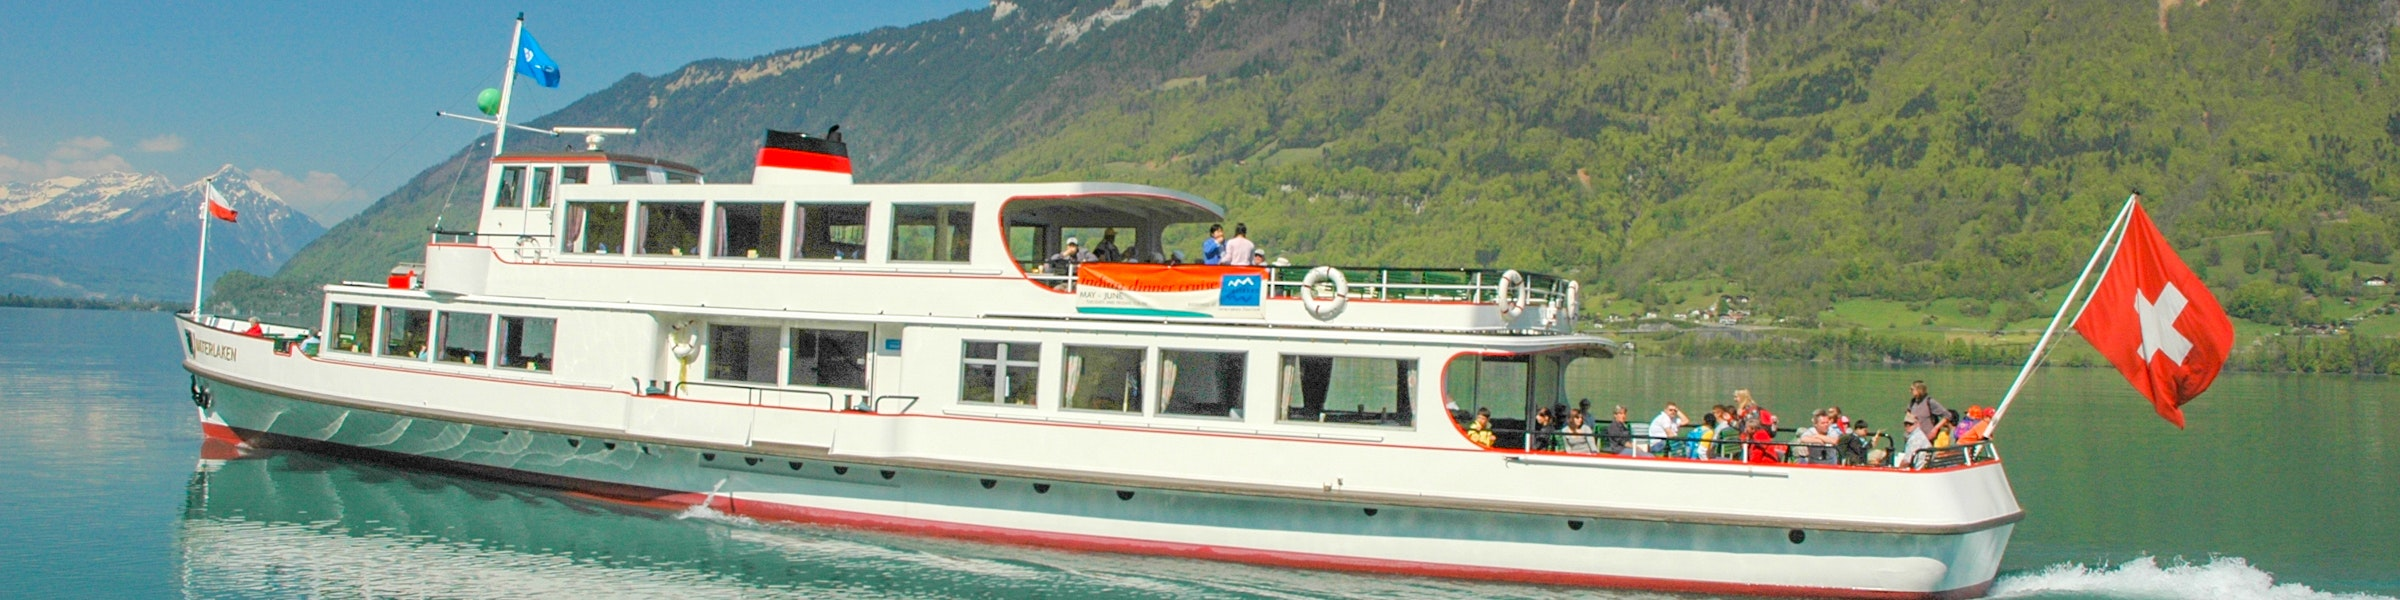 Boot Brienzersee